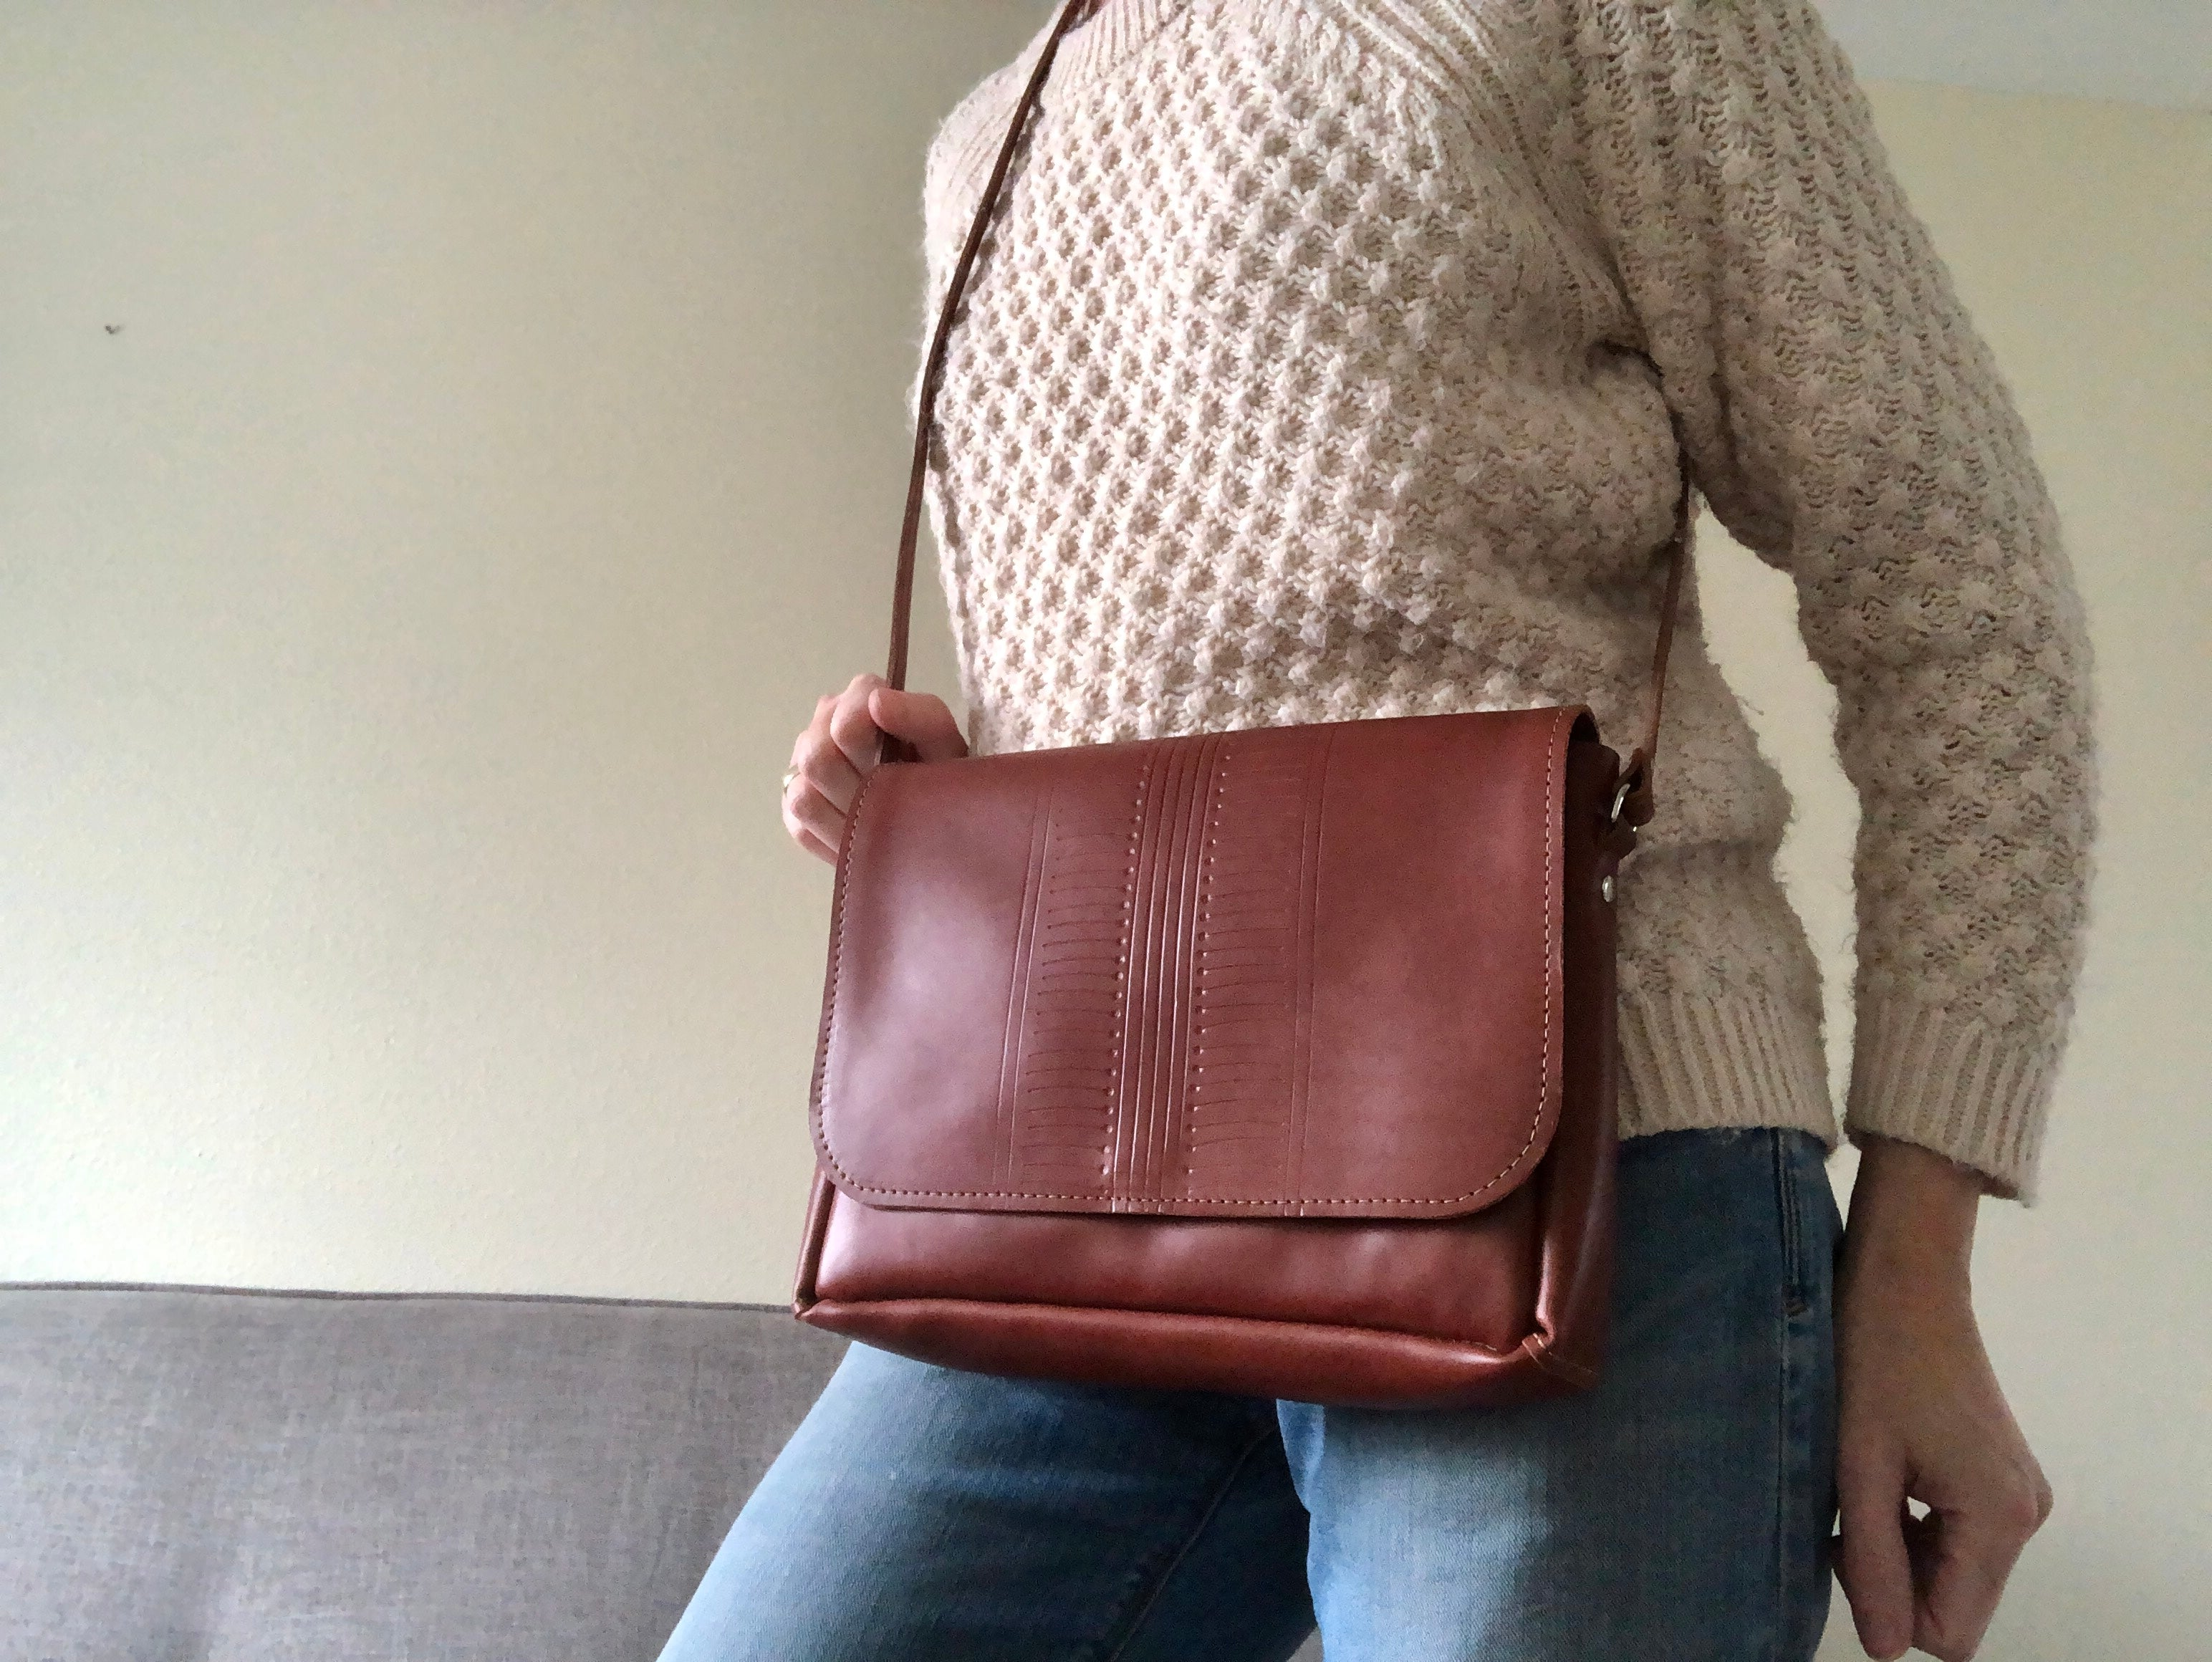 Woman wears brown leather bag with center pattern detail.